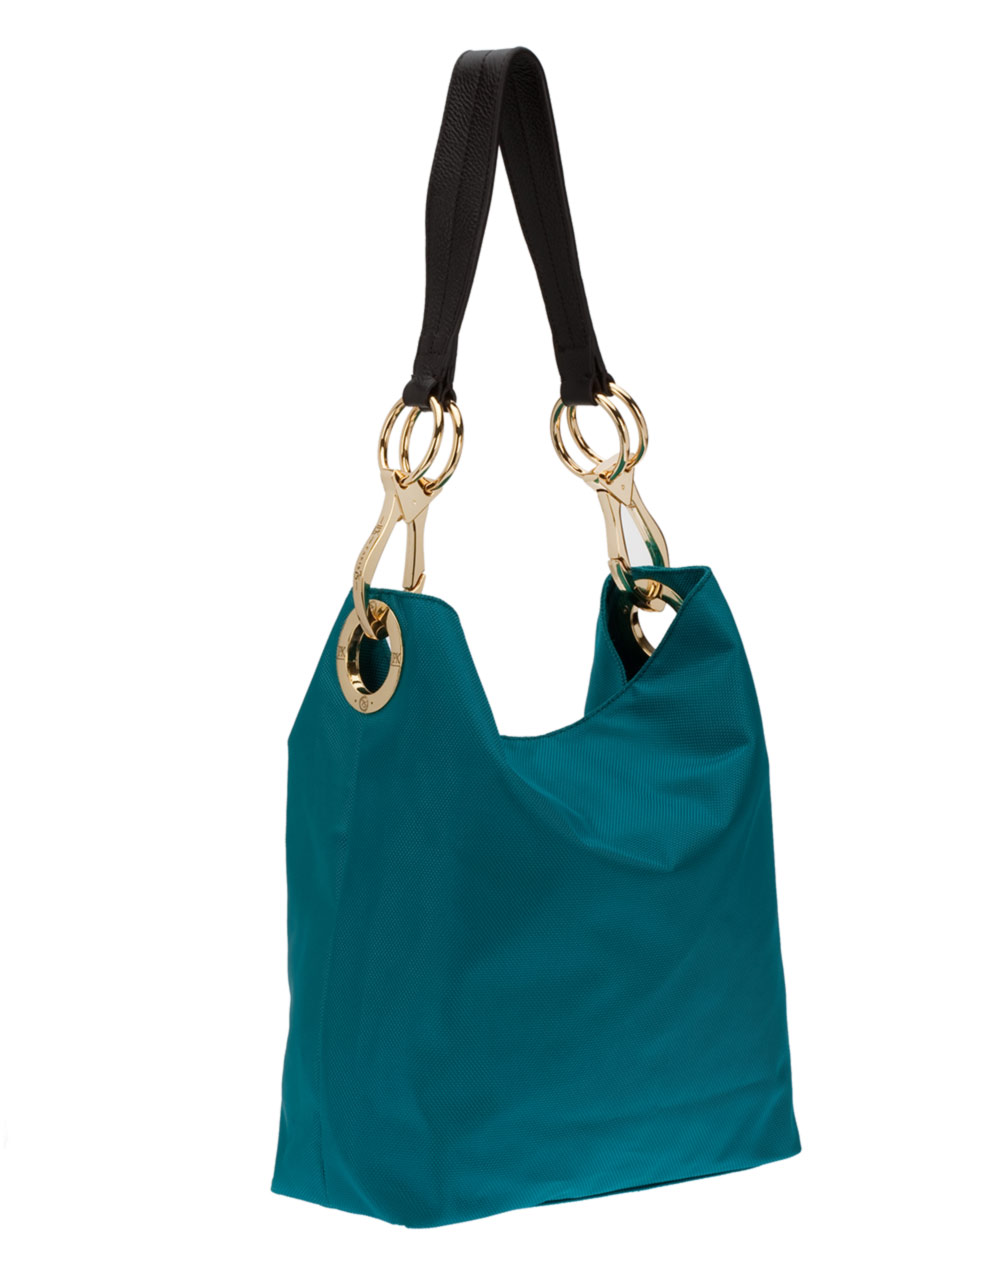 Gallery Previously Sold At Lord Taylor Women S Bucket Bags